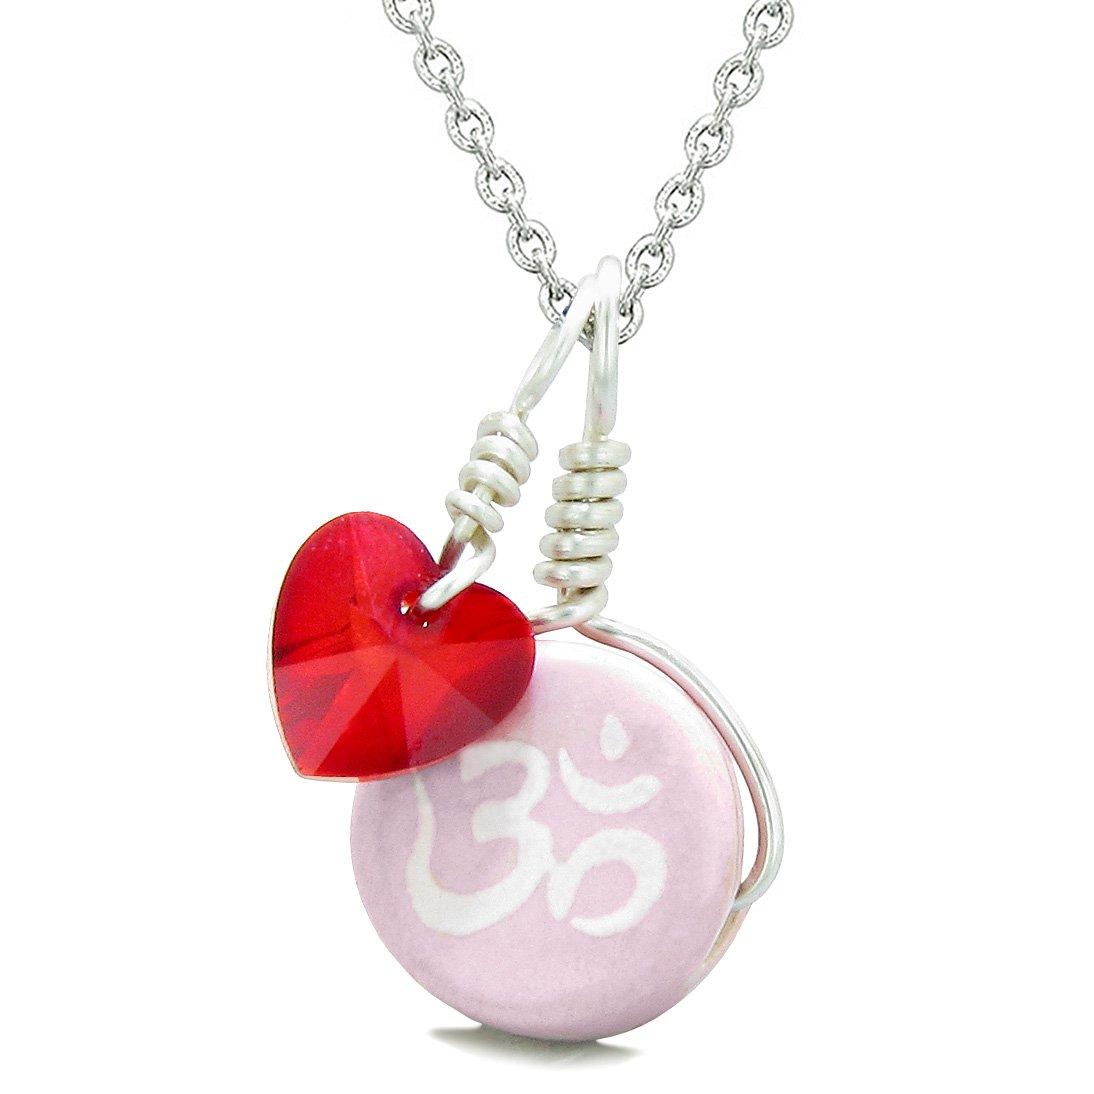 Handcrafted Cute Ceramic Lucky Charm Pink OM Ohm Tibetan Red Heart Amulet Pendant 22 Inch Necklace